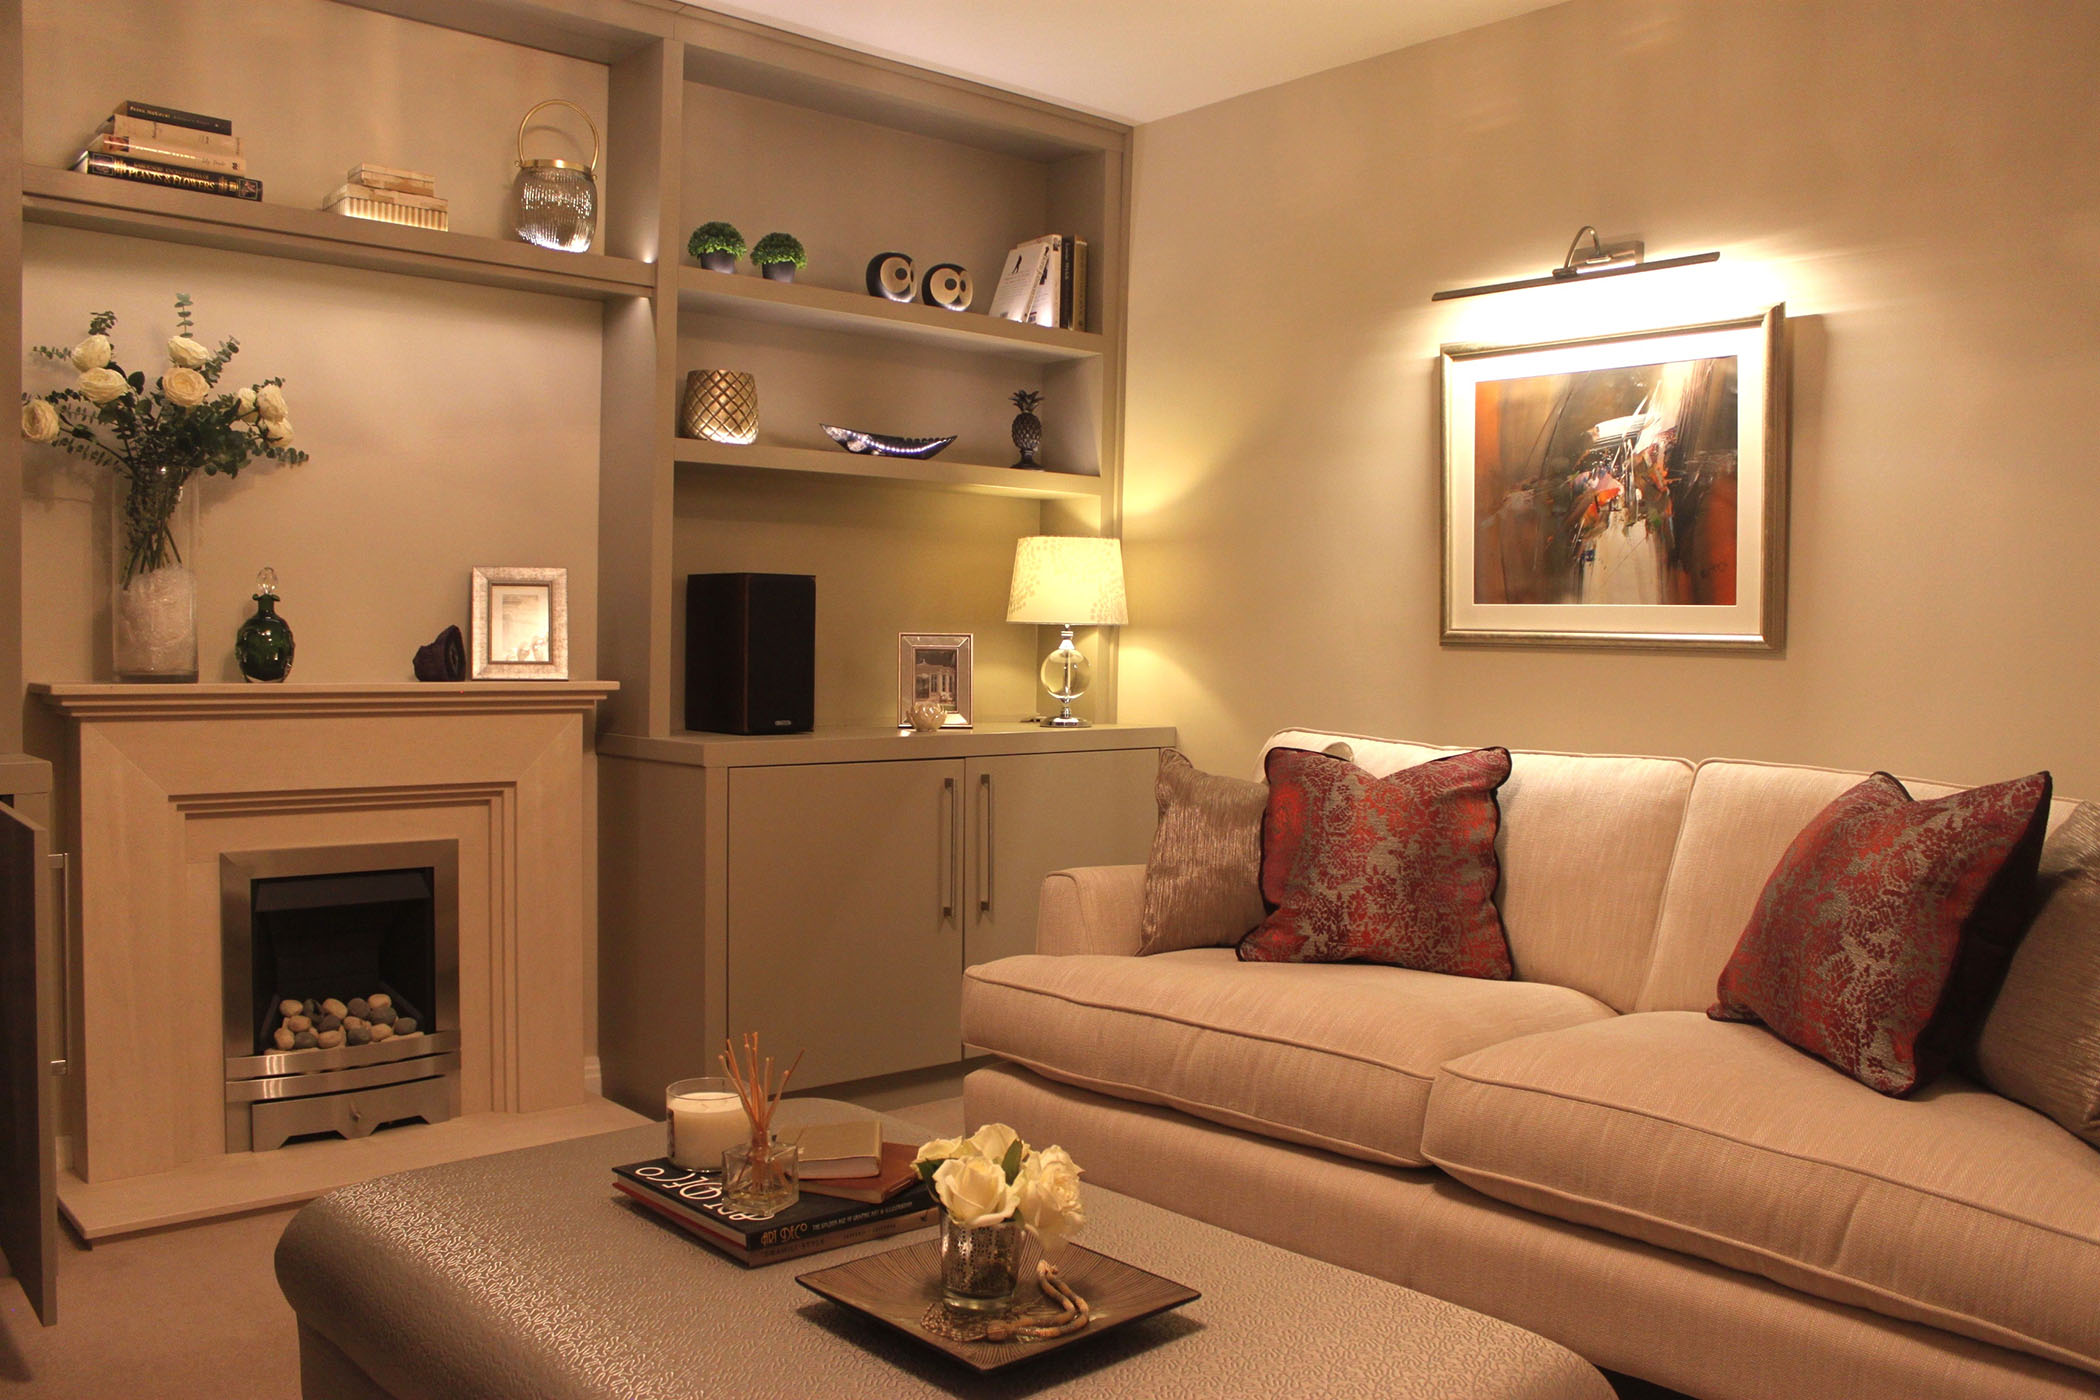 Interior Designer Buckinghamshire